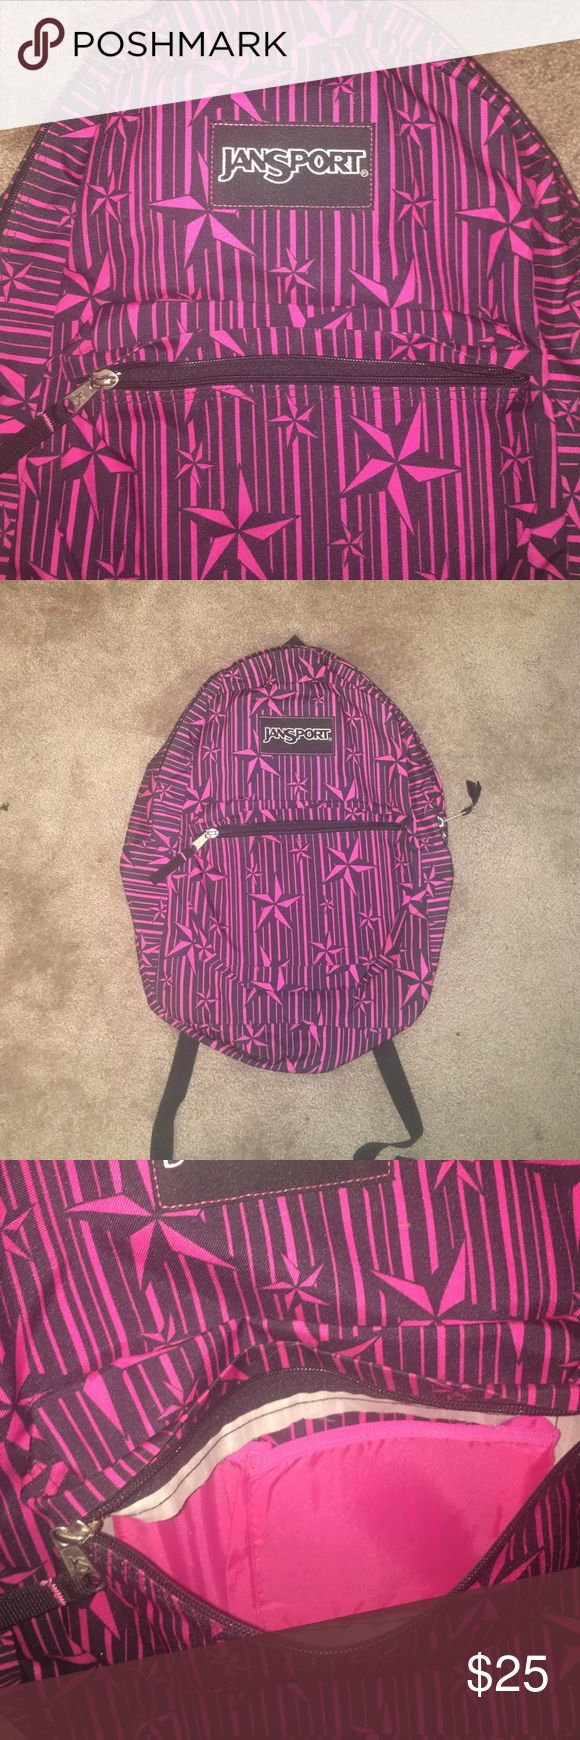 Jansport backpack Selling a really fun black and pink Jansport backpack with star and stripe design! Back features one small front pocket and one large pocket. Adjustable straps. Perfect condition other than pink mark on back (pictured). This bag isn't bulky but holds lots of stuff! Used twice as a carry on! Make me an offer 😊 Jansport Bags Backpacks